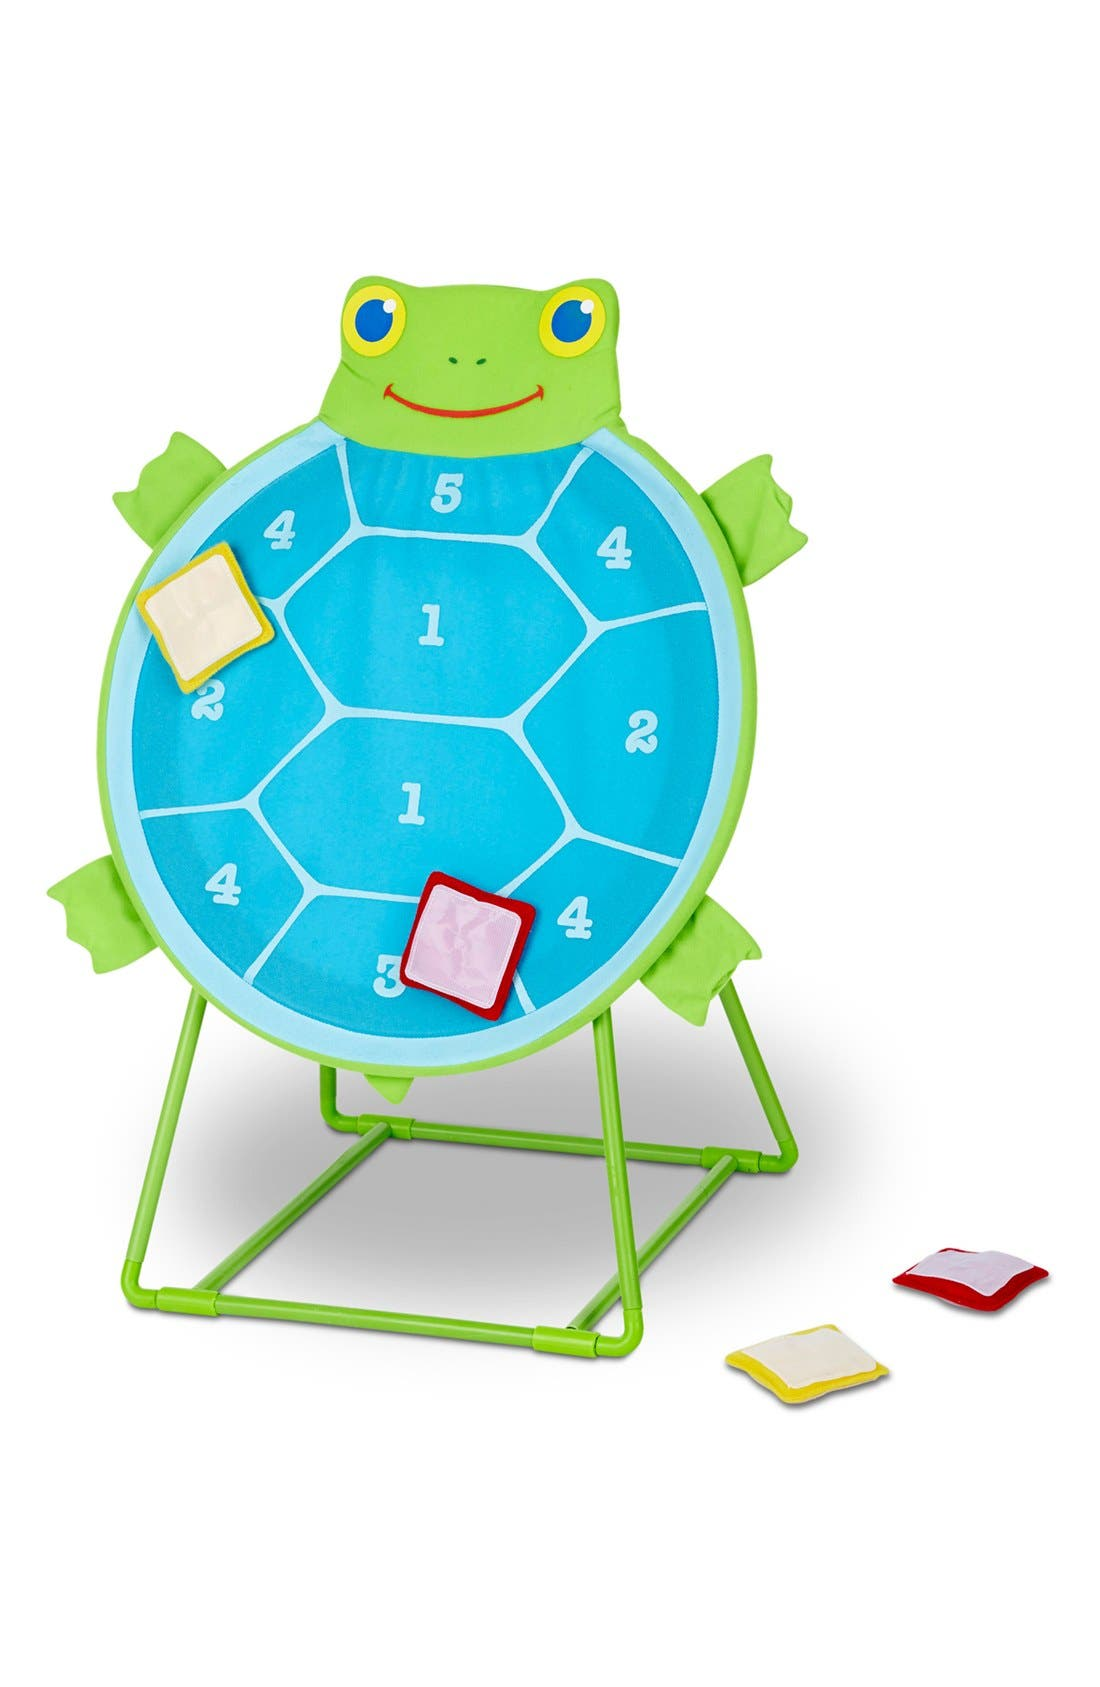 'Tootle Turtle' Target Game,                             Alternate thumbnail 4, color,                             GREEN